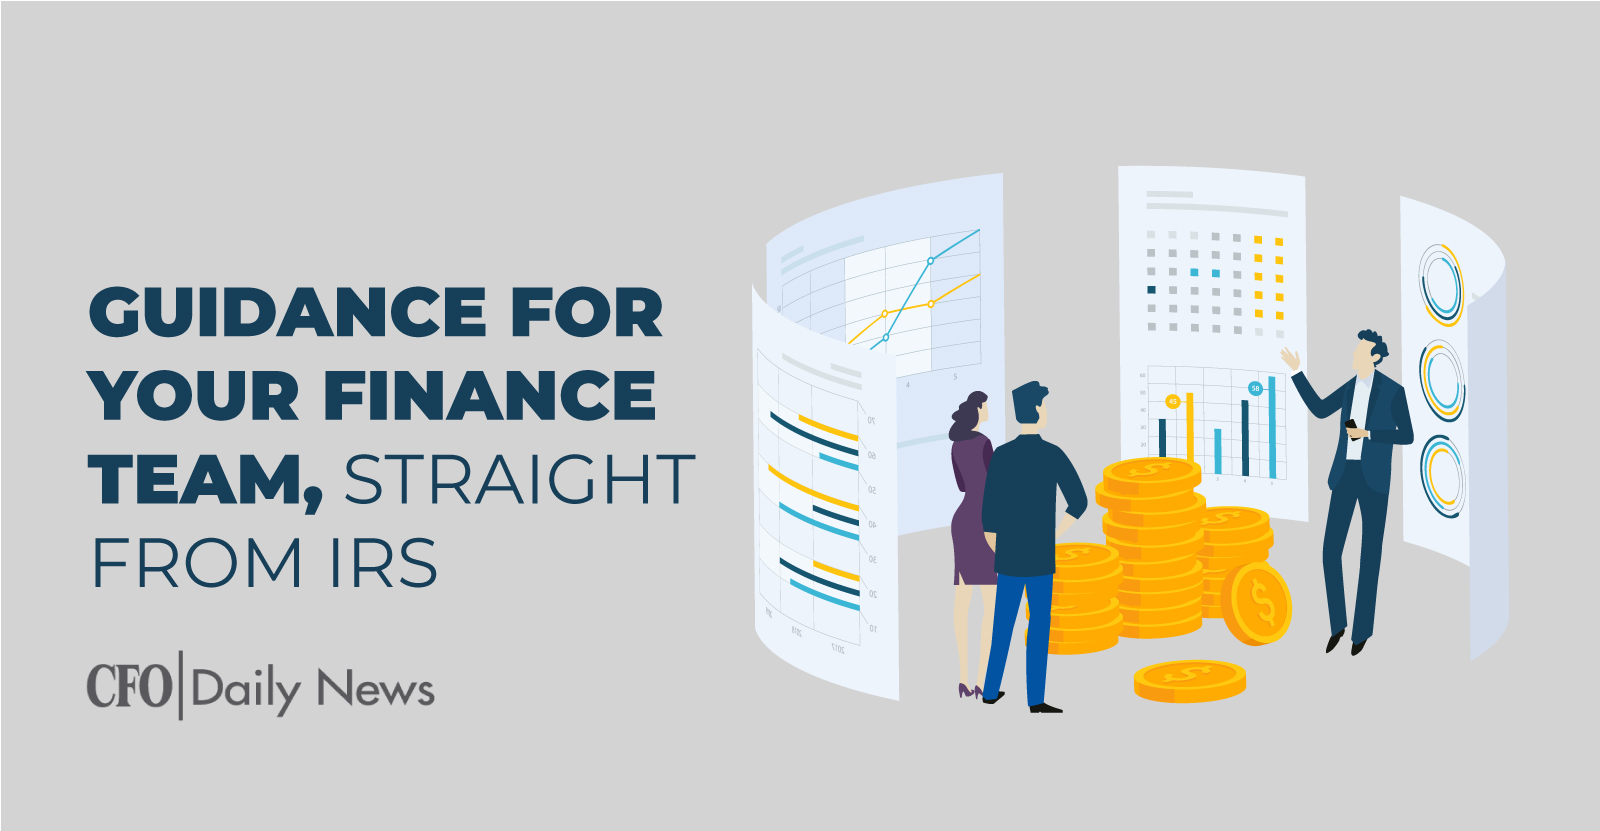 Guidance For Your Finance Team Straight From IRS